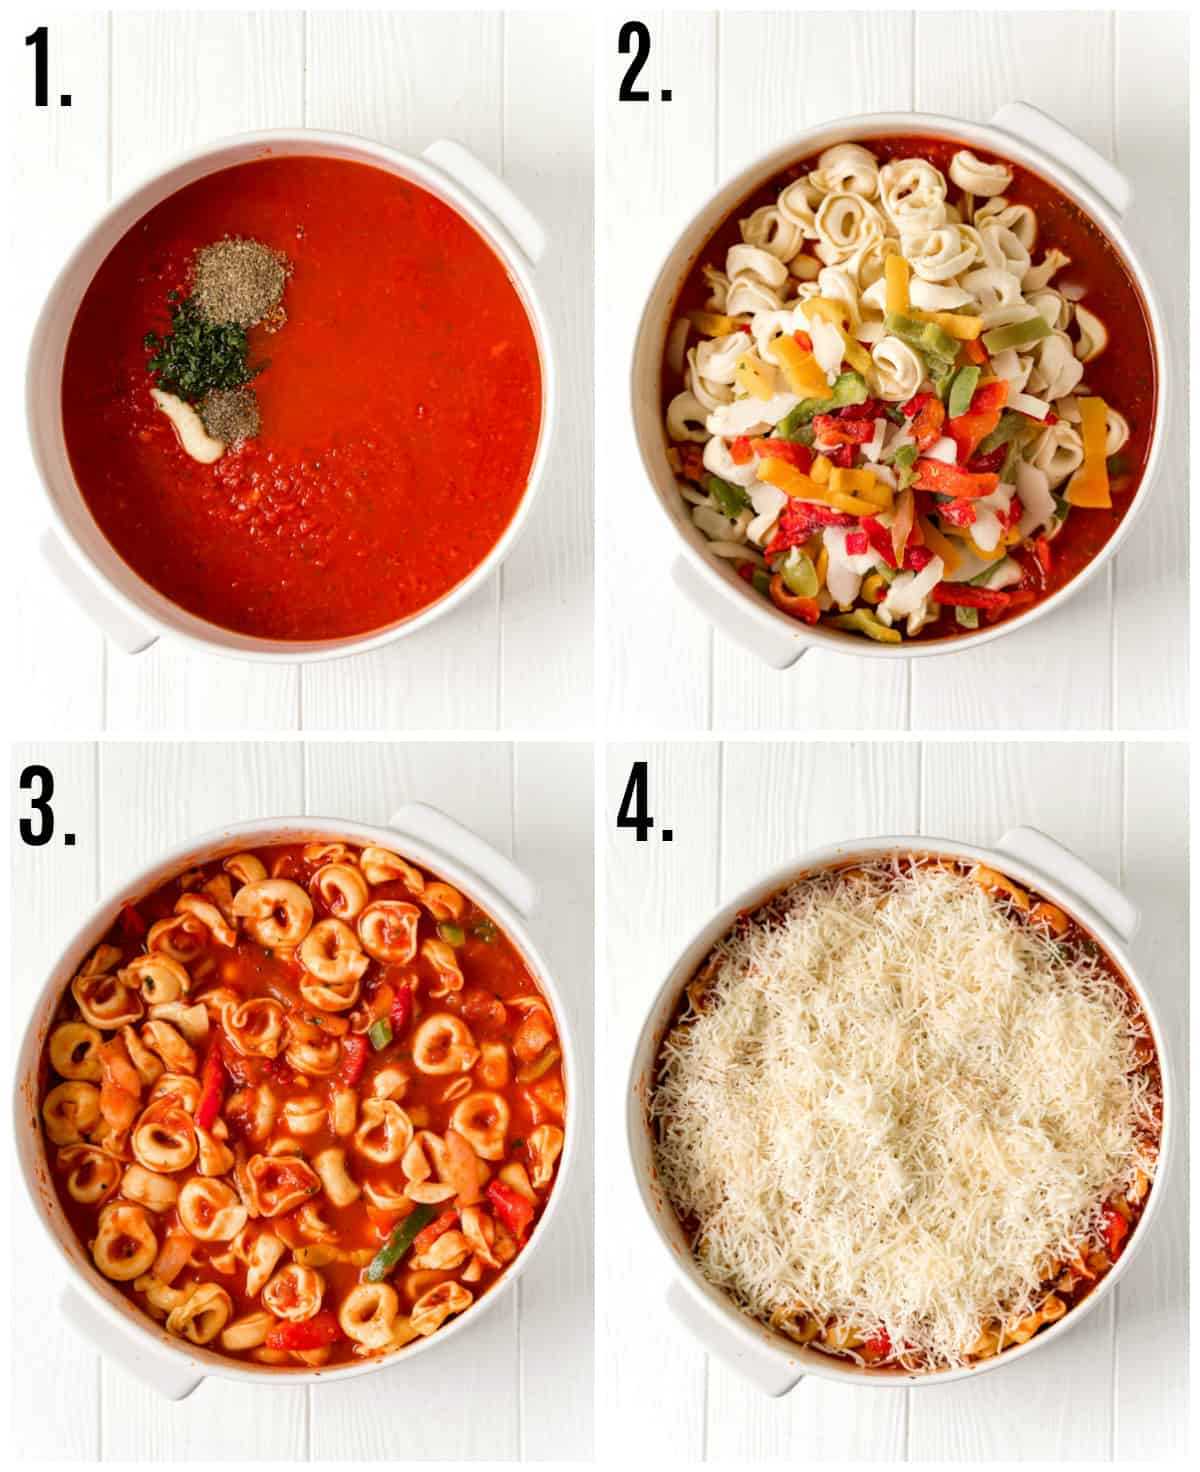 Step by step photos on how to make Baked Tortellini